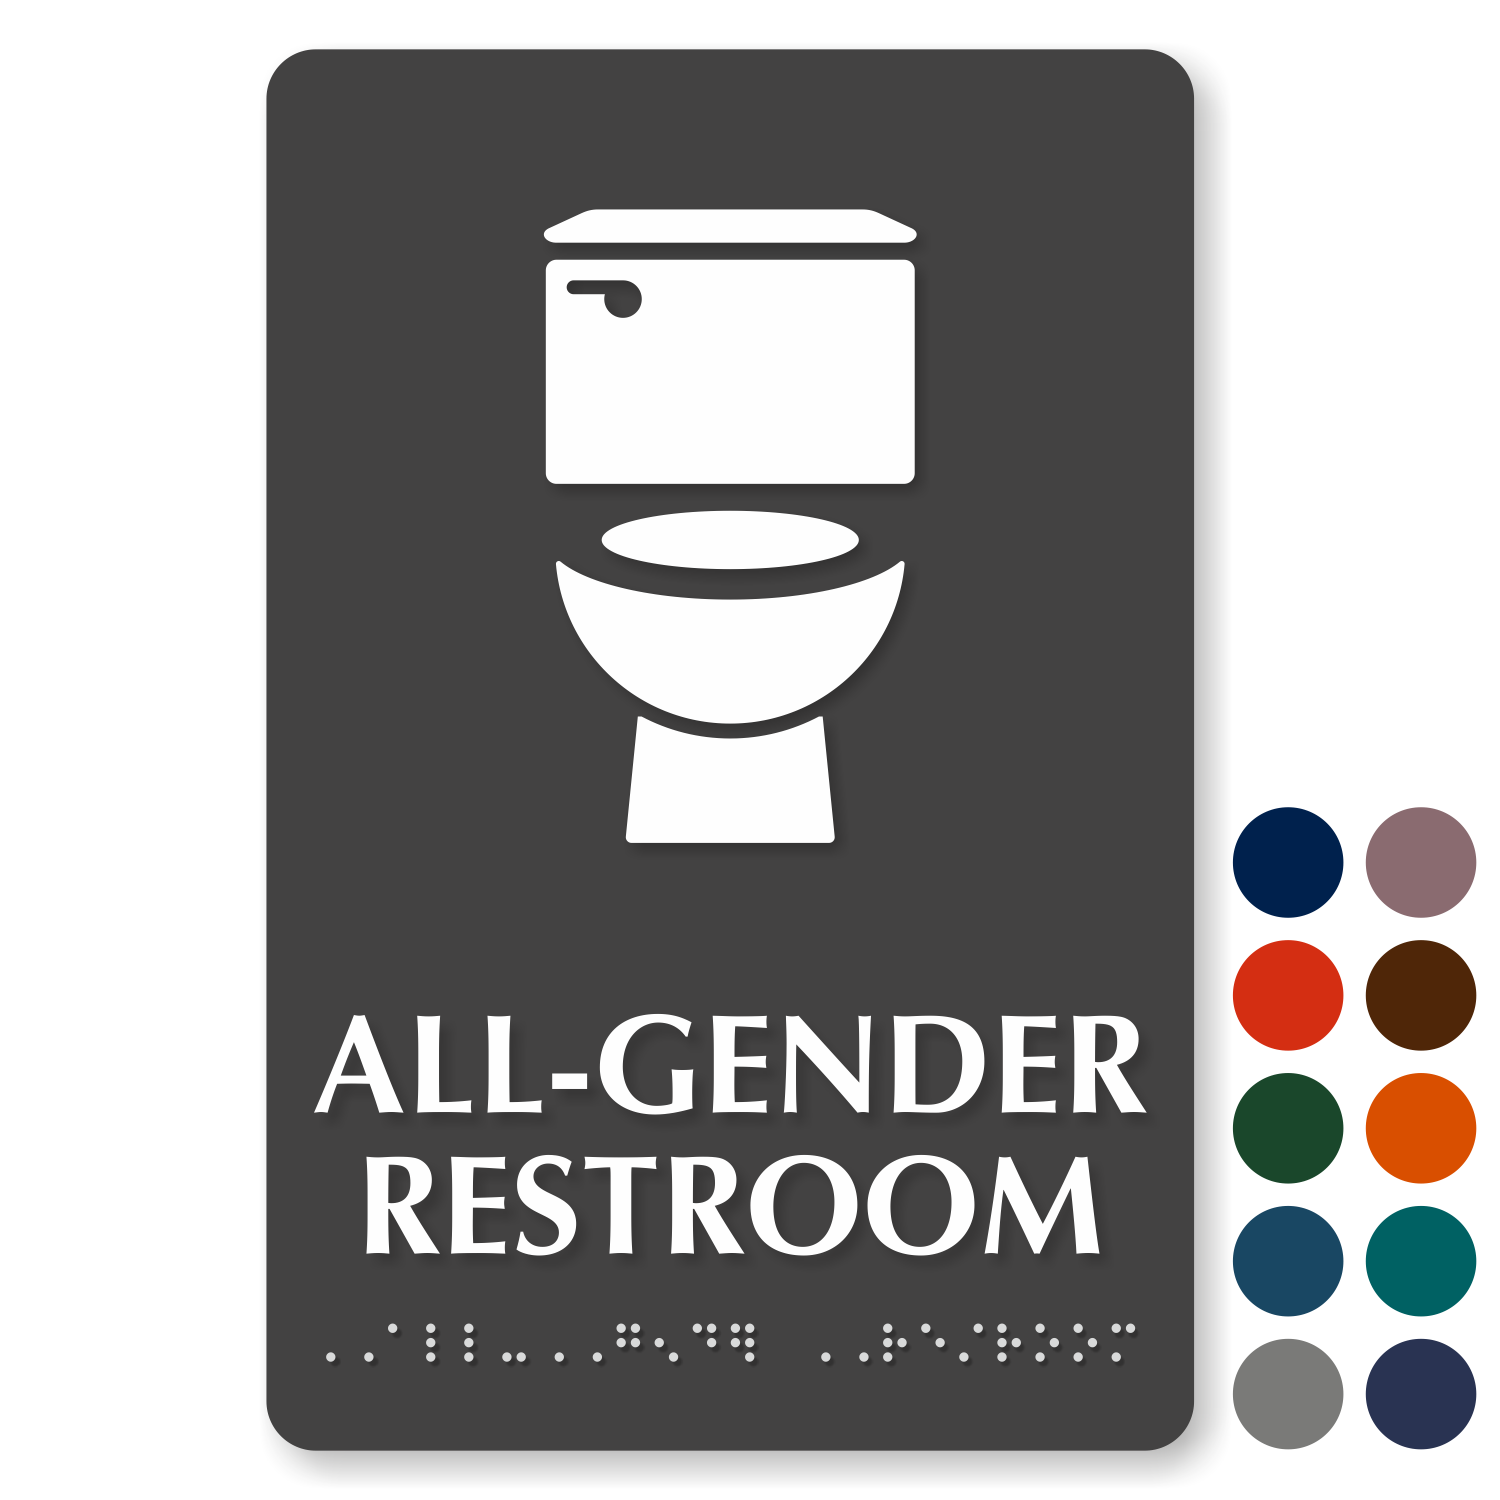 Bathroom Signs Ireland all-gender restroom signs | transgender restroom signs